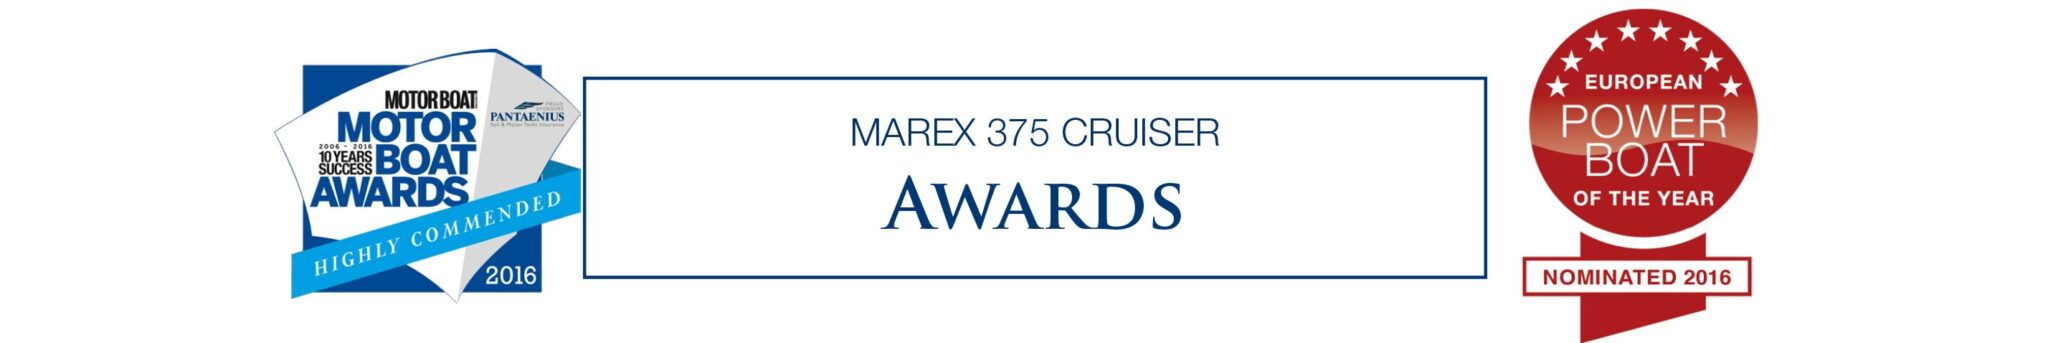 marex-375-cruiser-awards